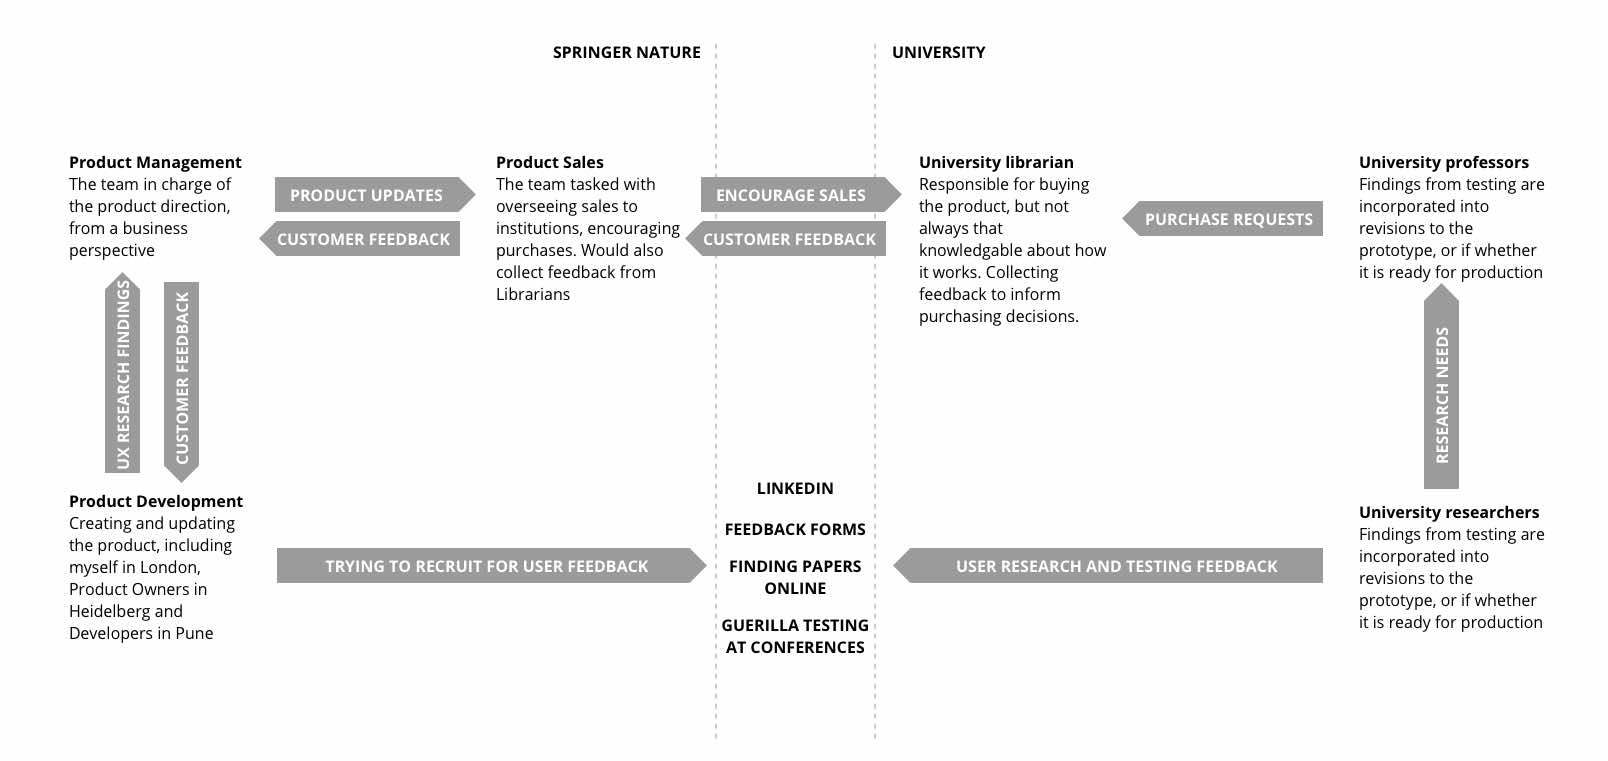 A diagram showing the complication of the relations between the users at a university and the production team at Springer Nature